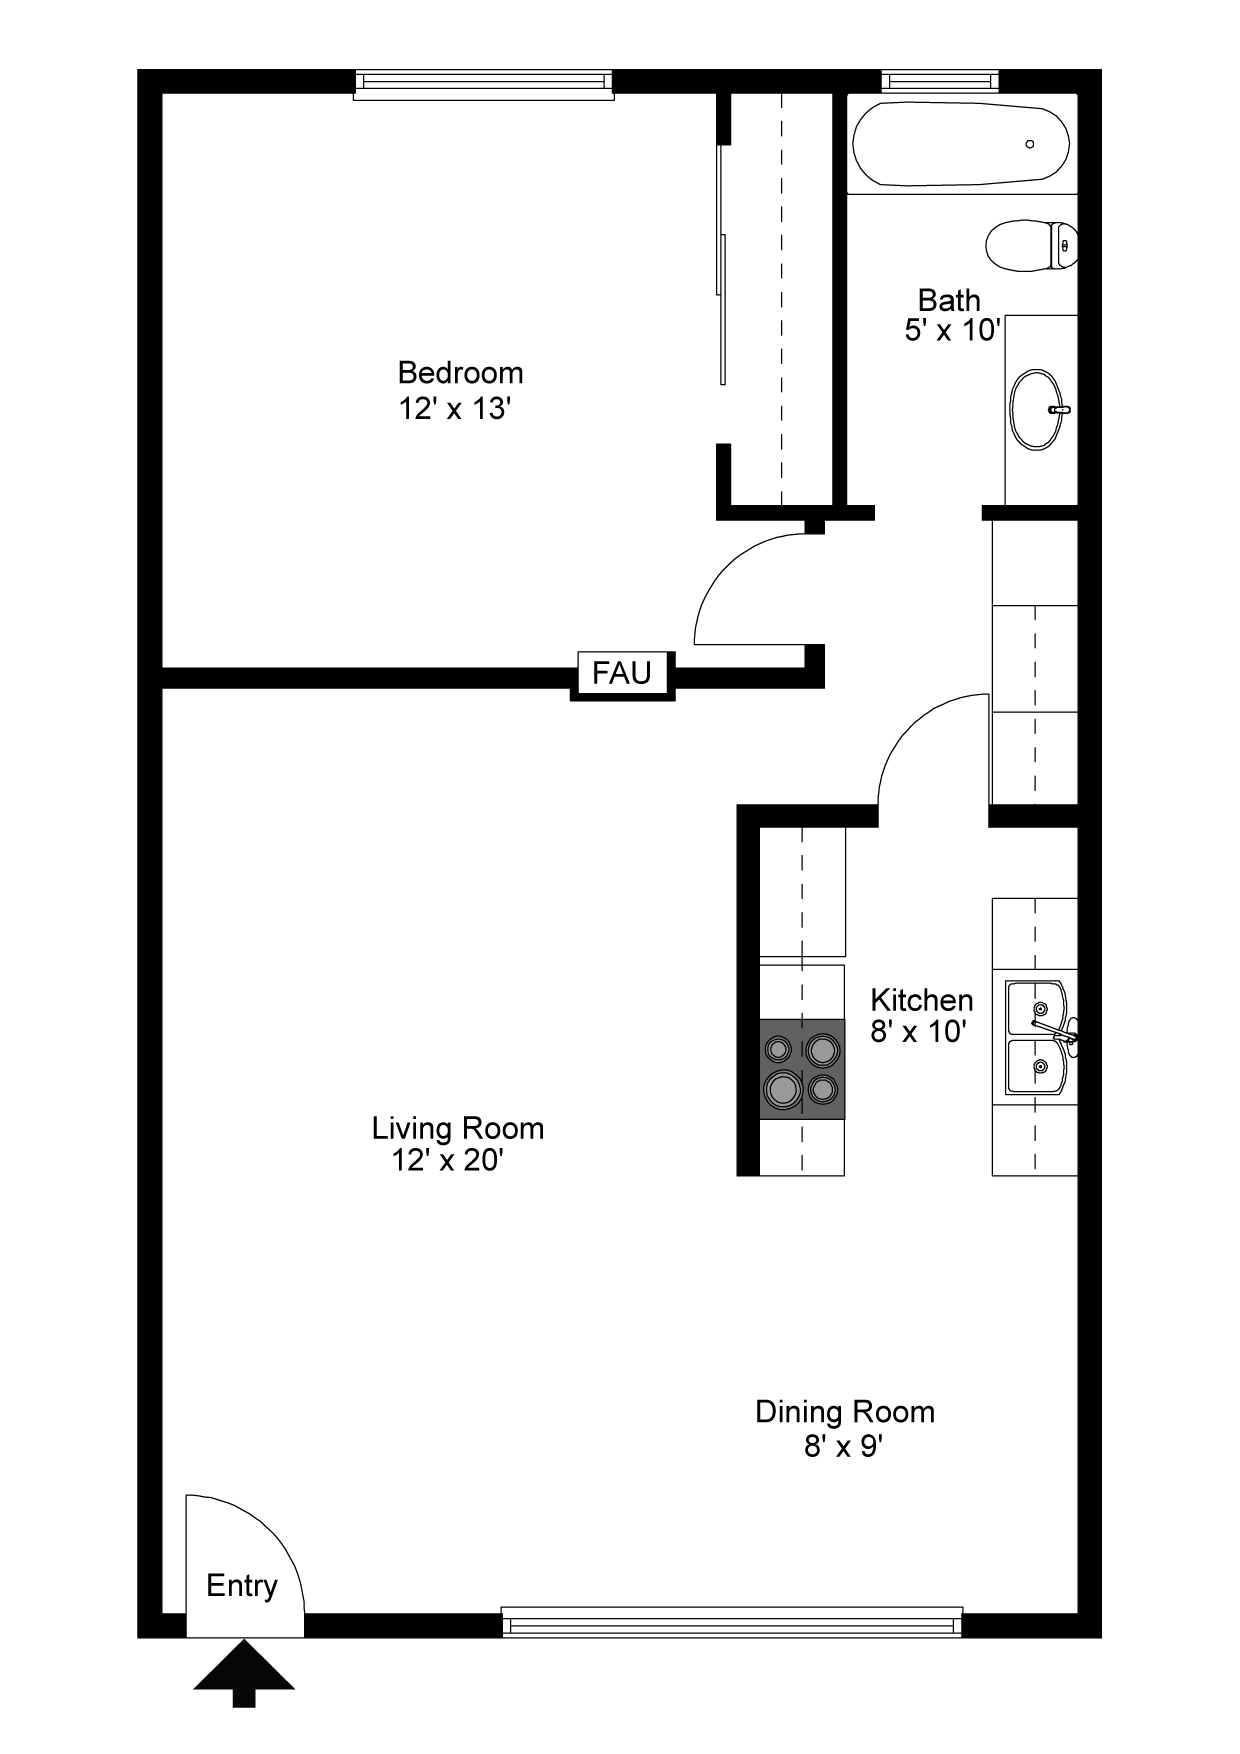 One bedroom floorplan.